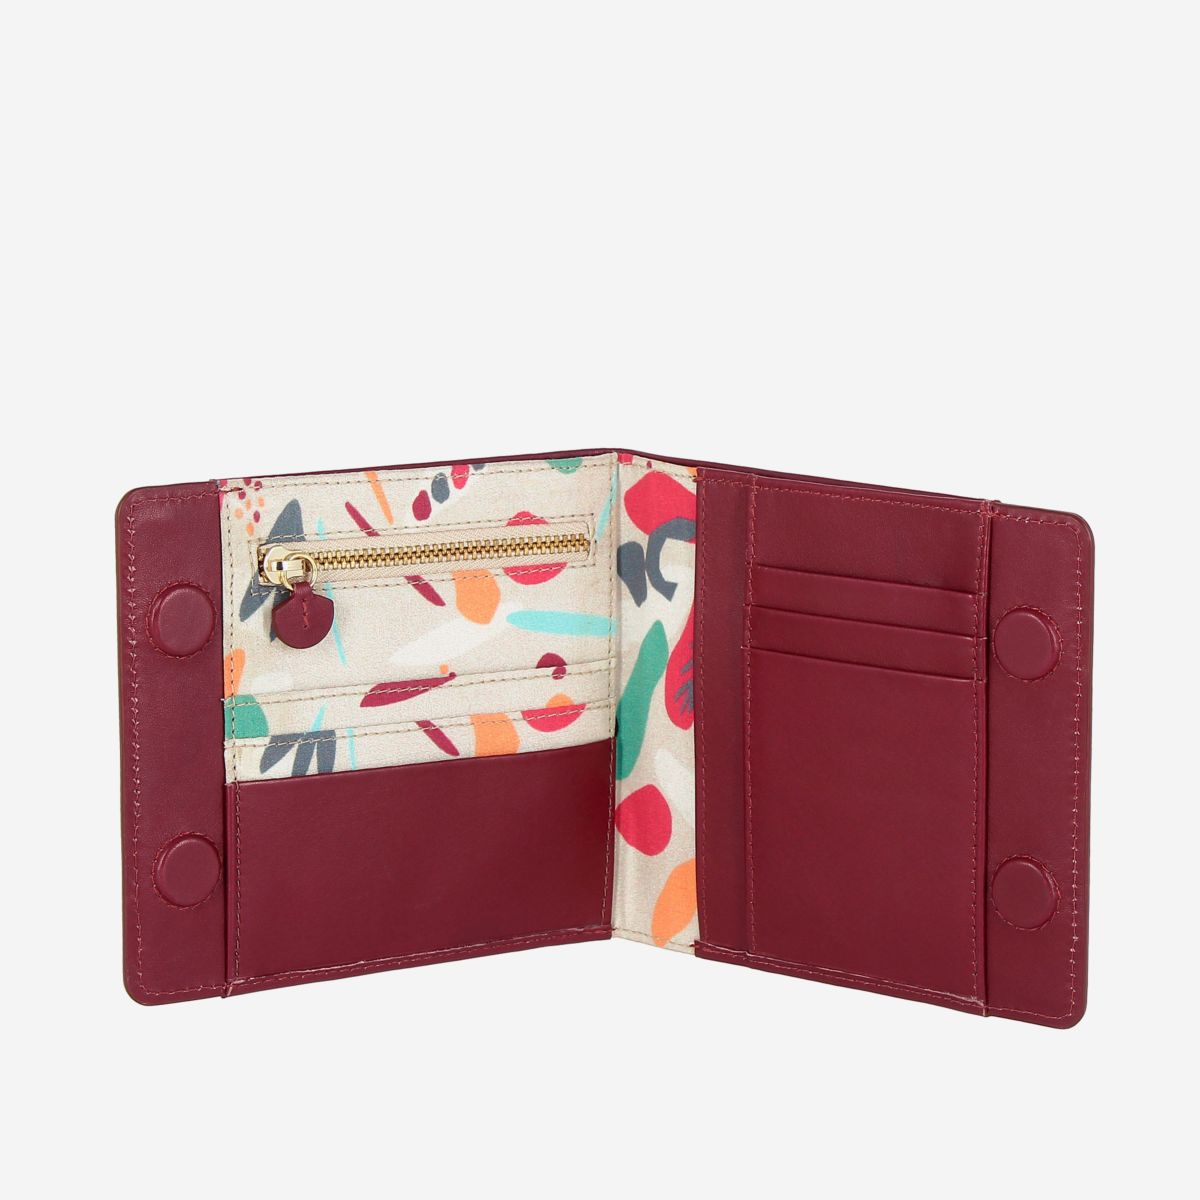 DuDu Designer Womens Leather Wallet With Magnetic Closure - Bordeaux